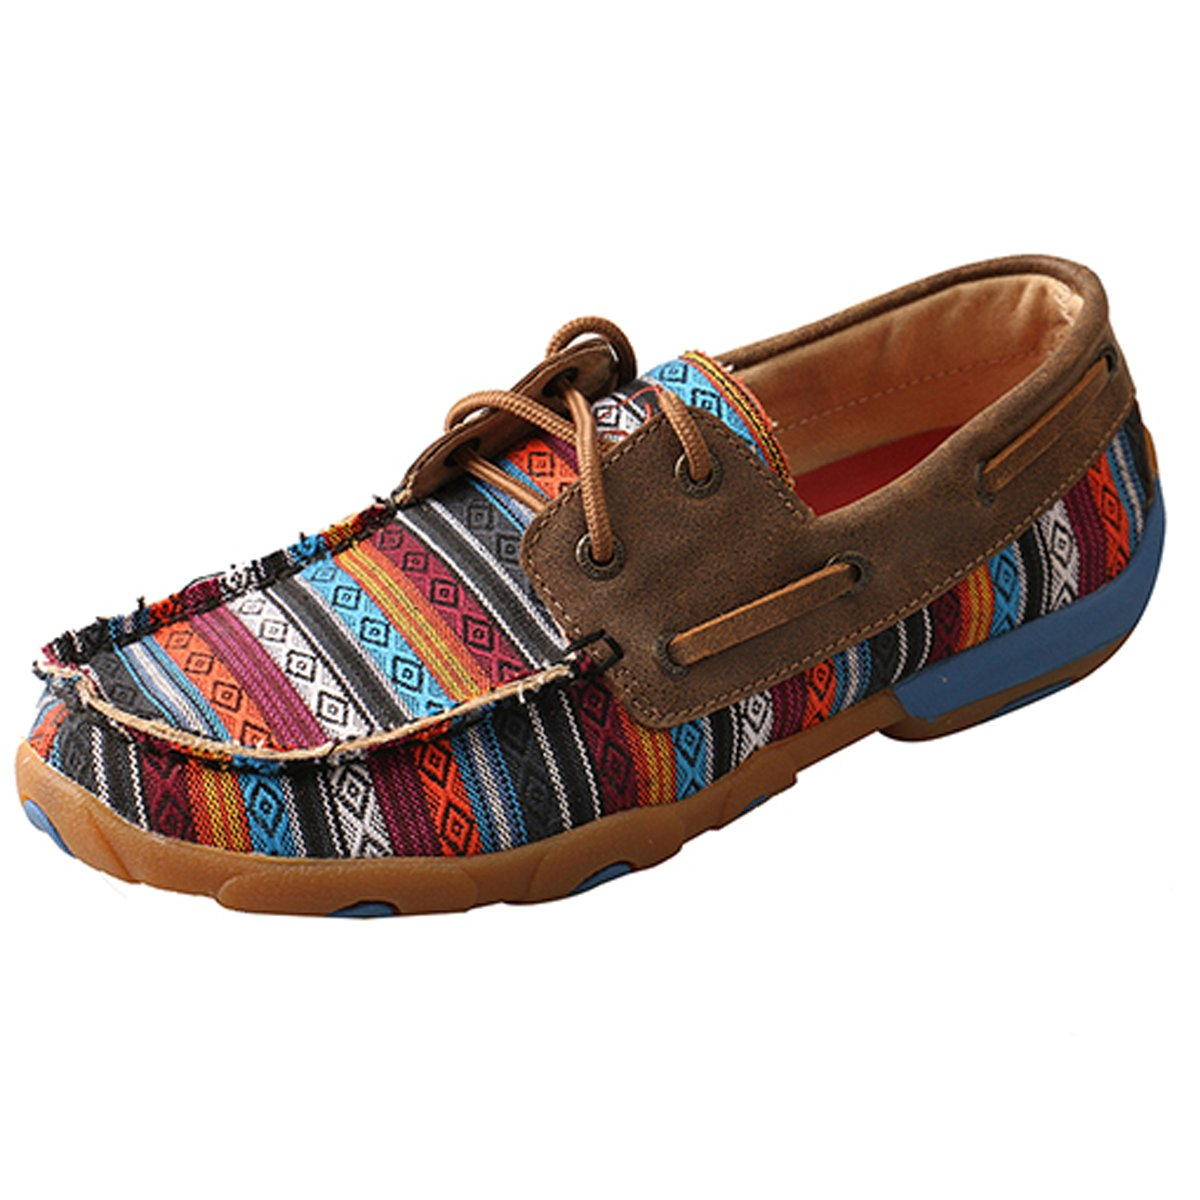 Amazon.com: Twisted X Womens Driving Moccasin in Serape Canvas: Sports & Outdoors